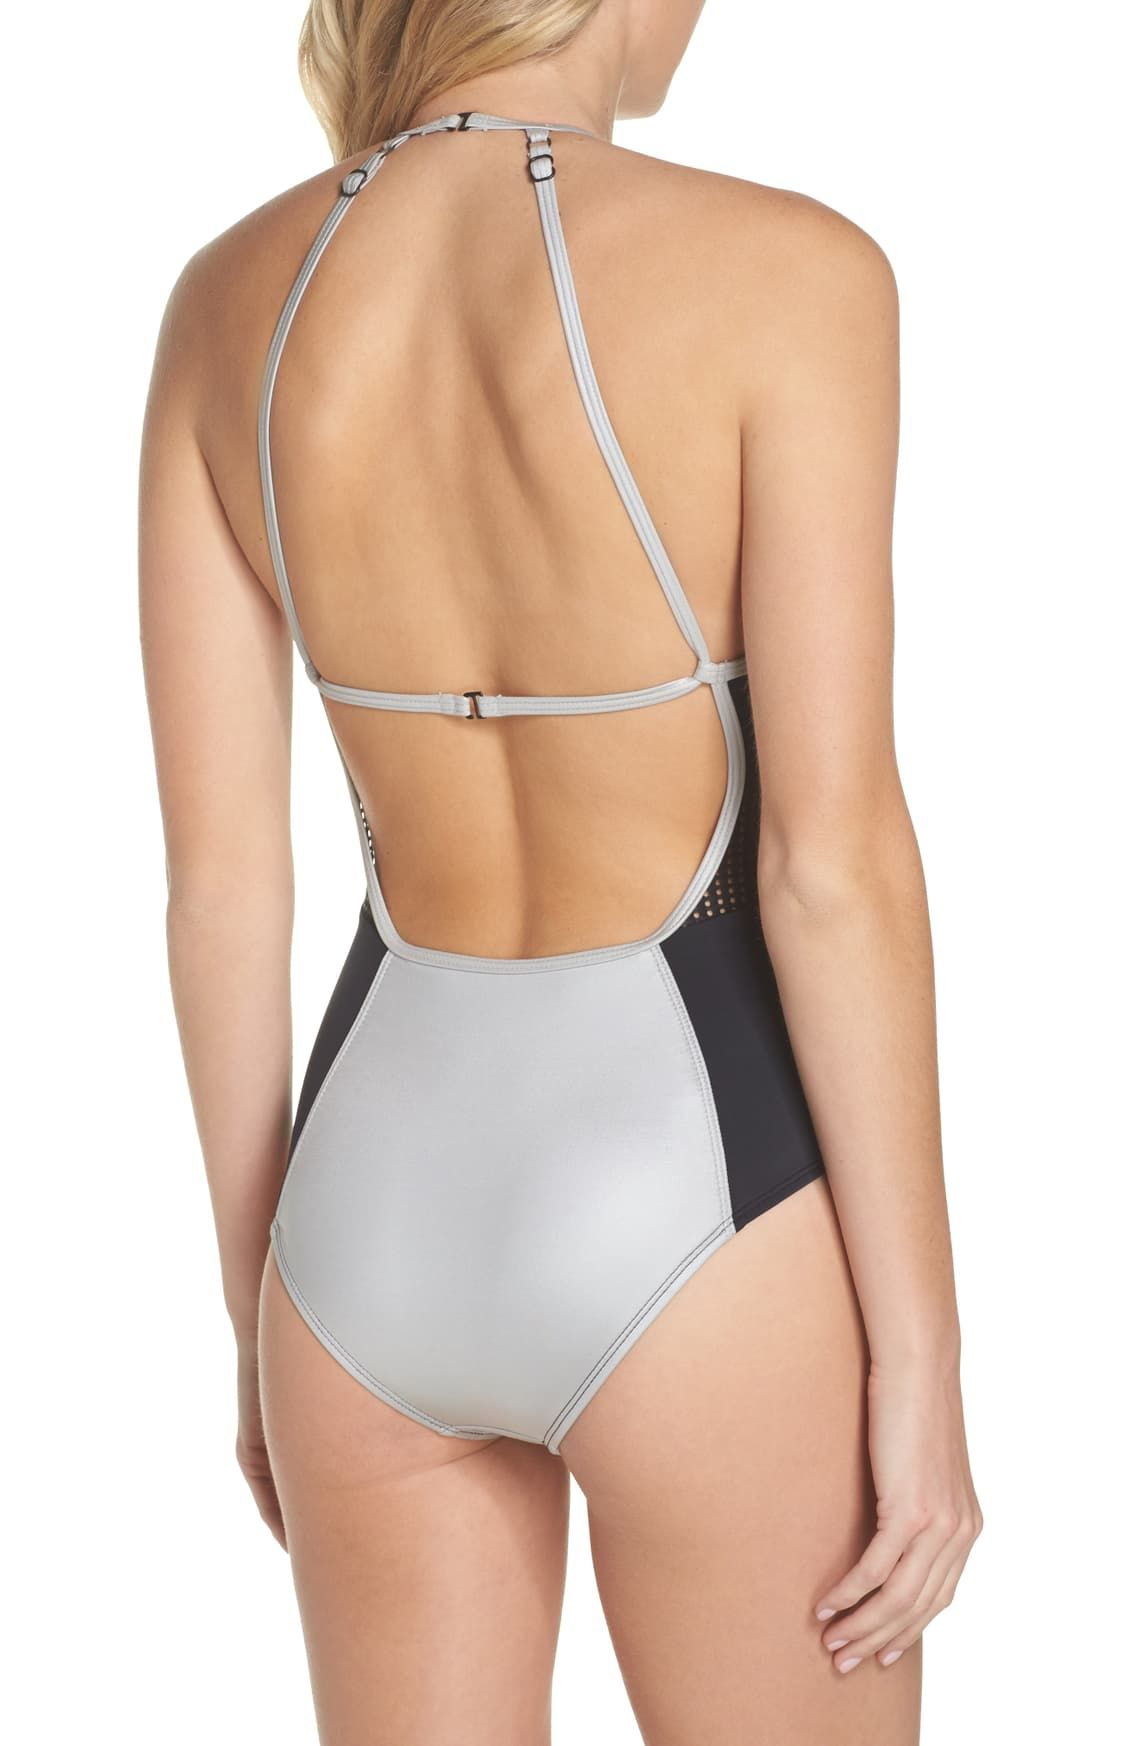 Zella One Piece Swimsuit Nordstrom One Piece Supportive Swimsuit Swimsuits